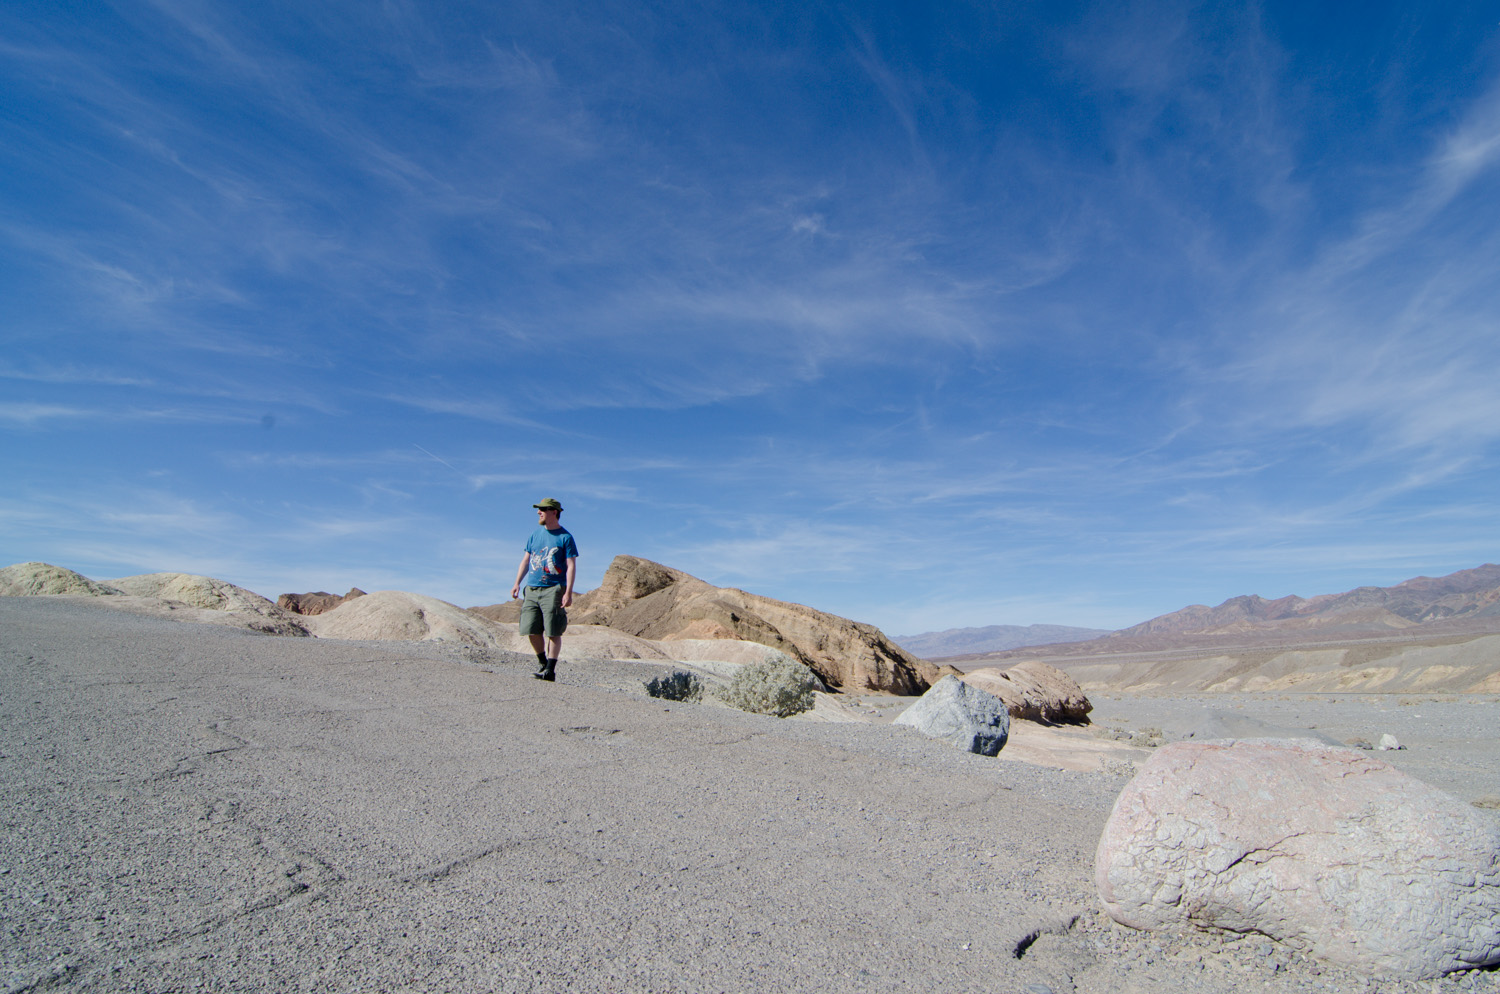 Firechild_Photography_Death_Valley-7929